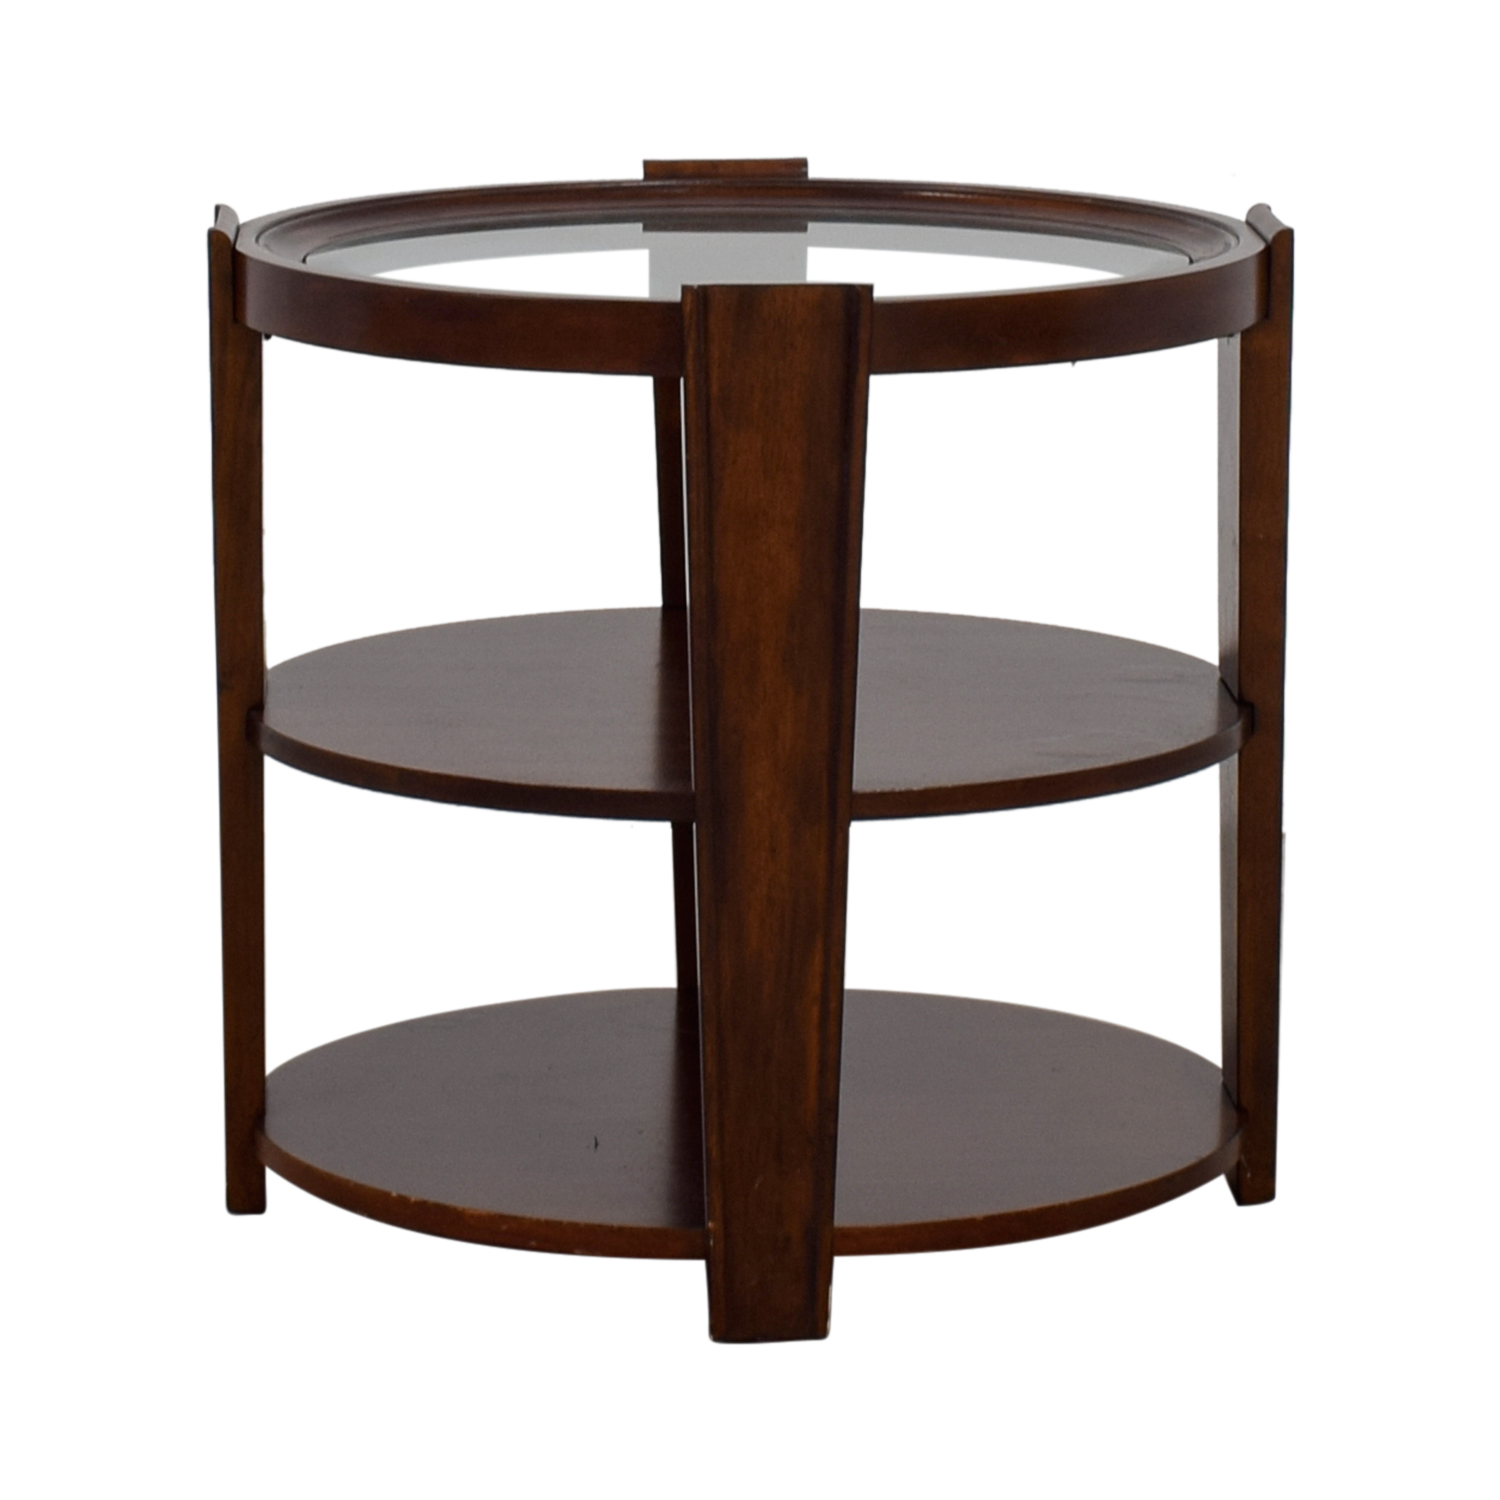 buy  Round Wood and Glass Side Table online